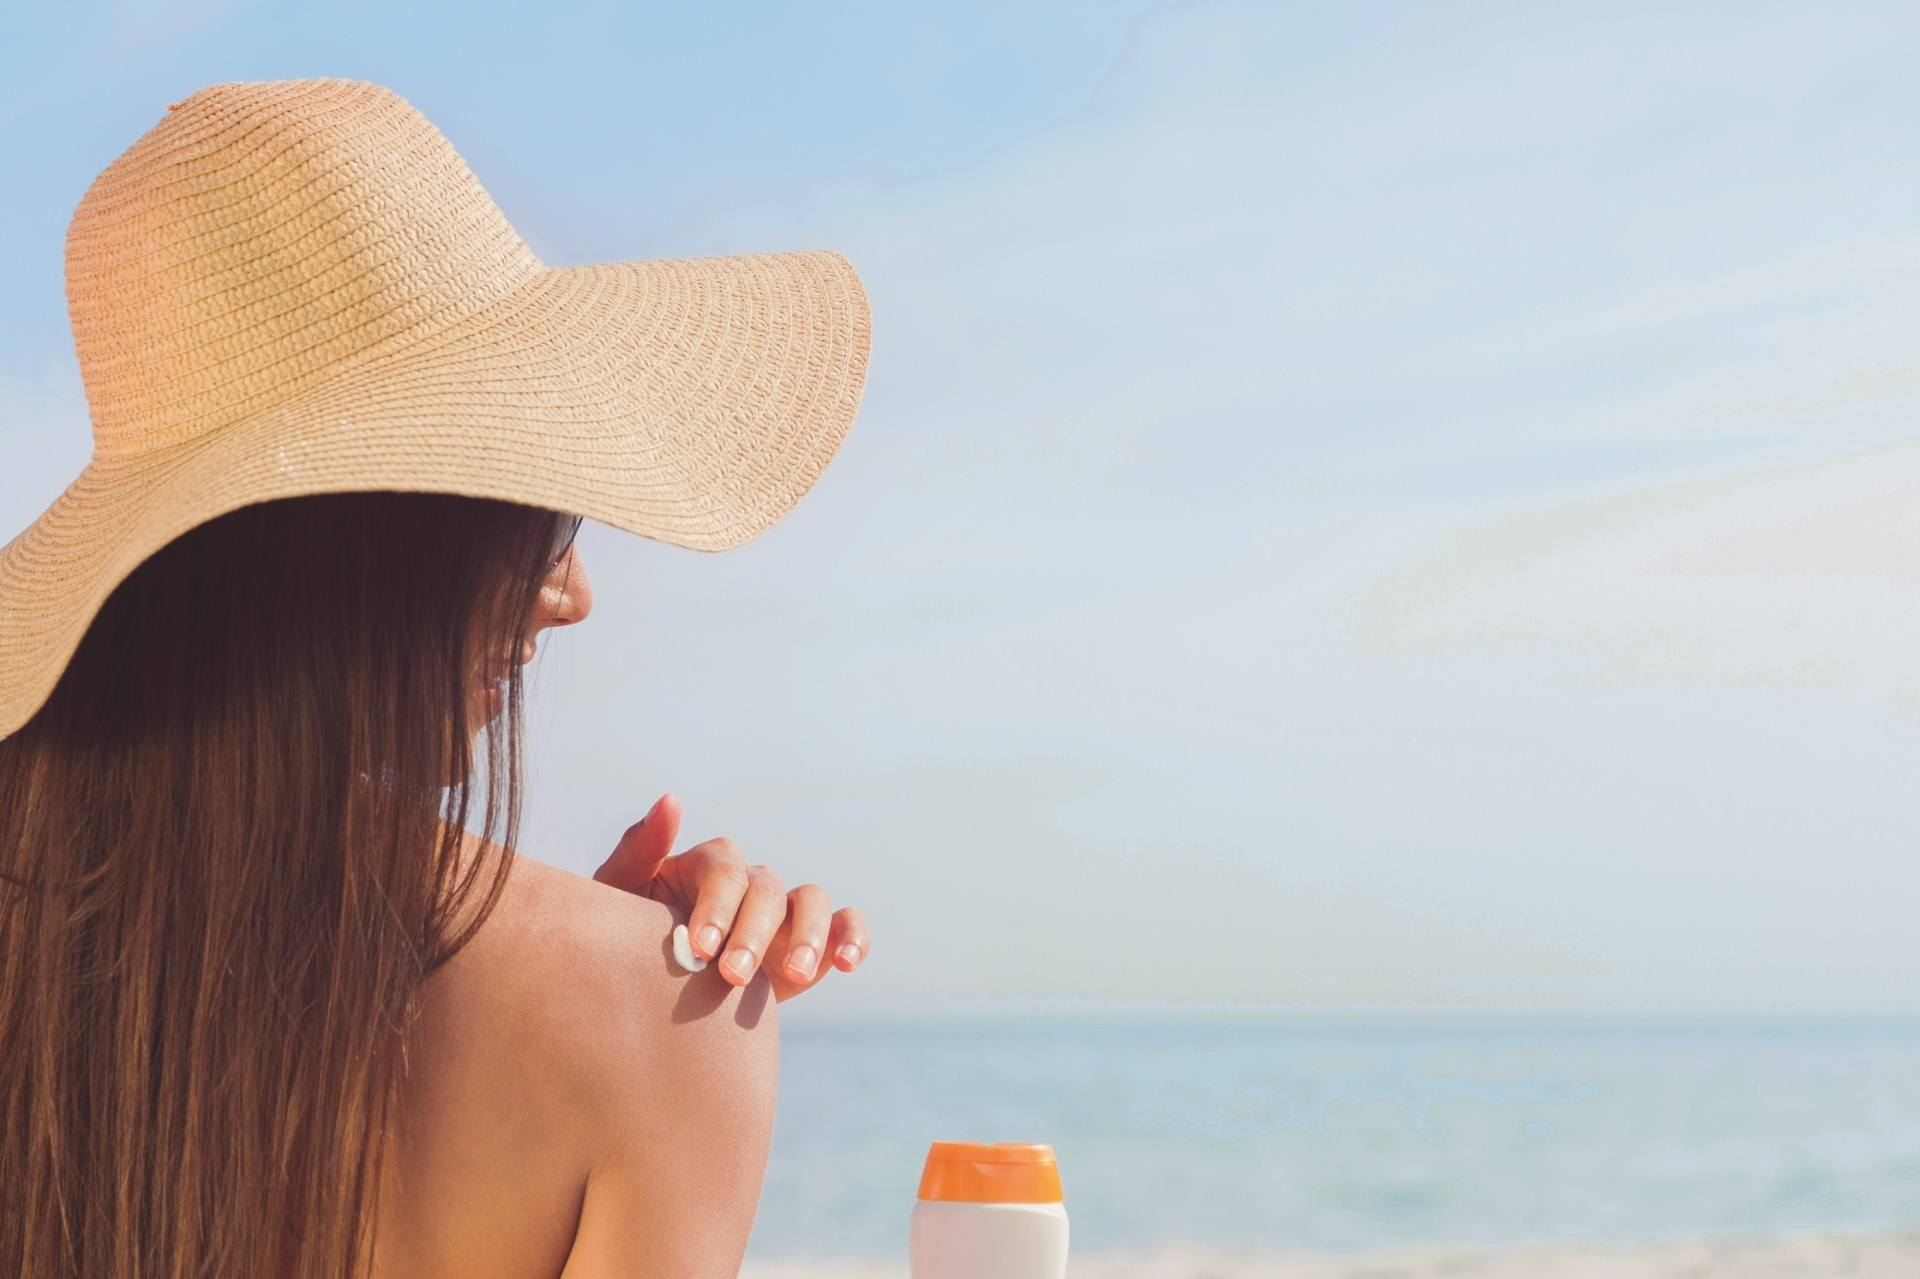 road trip packing list: sunscreen for skin care